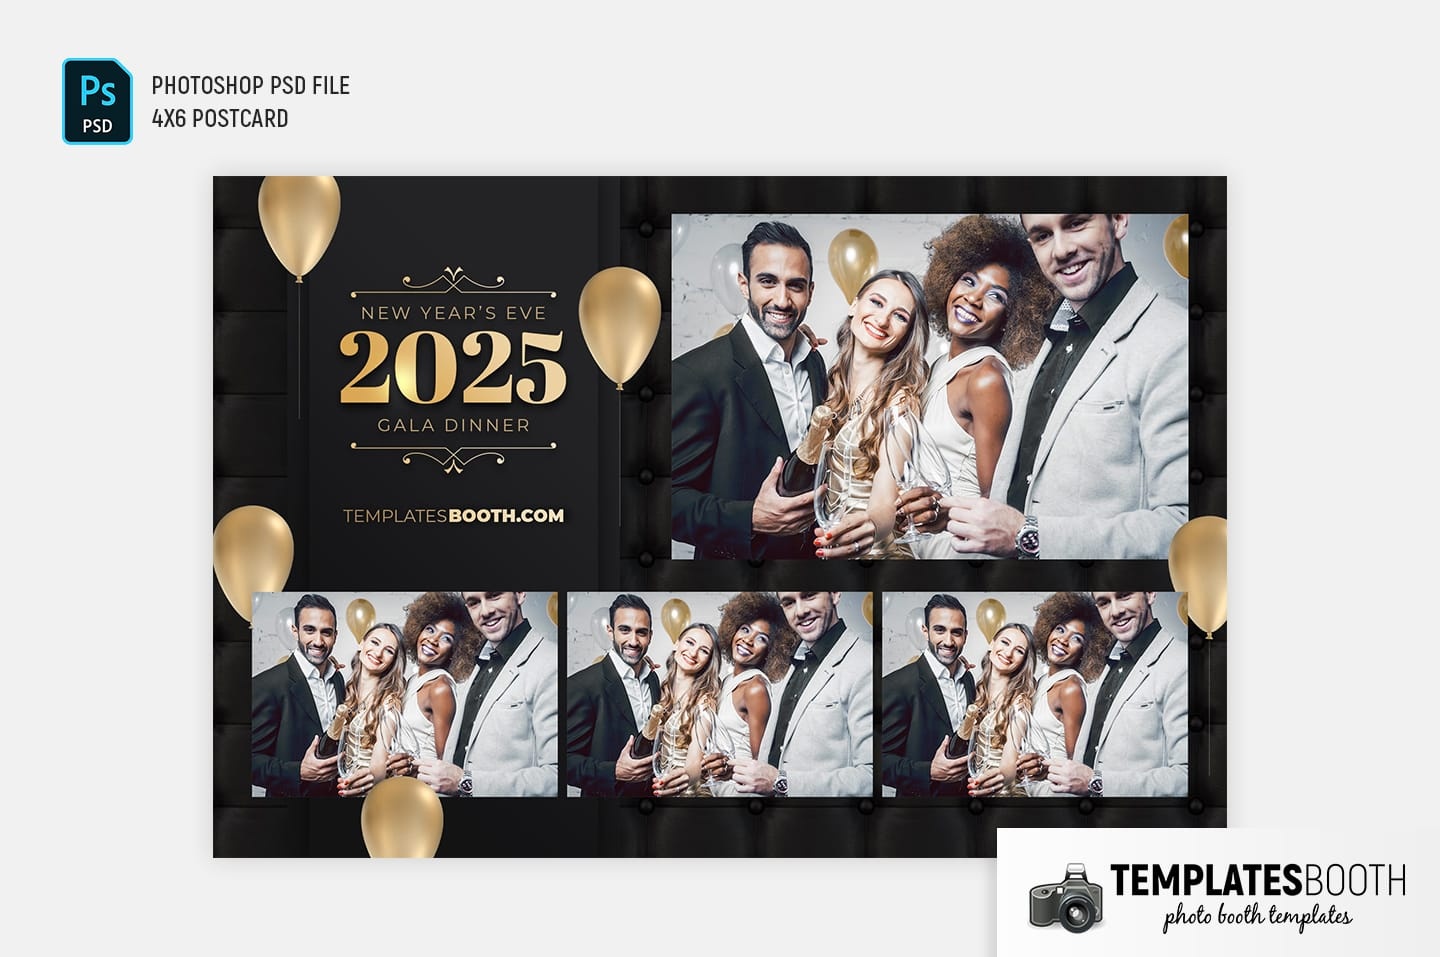 New Year's Eve Party Photo Booth Template (4x6 postcard landscape)